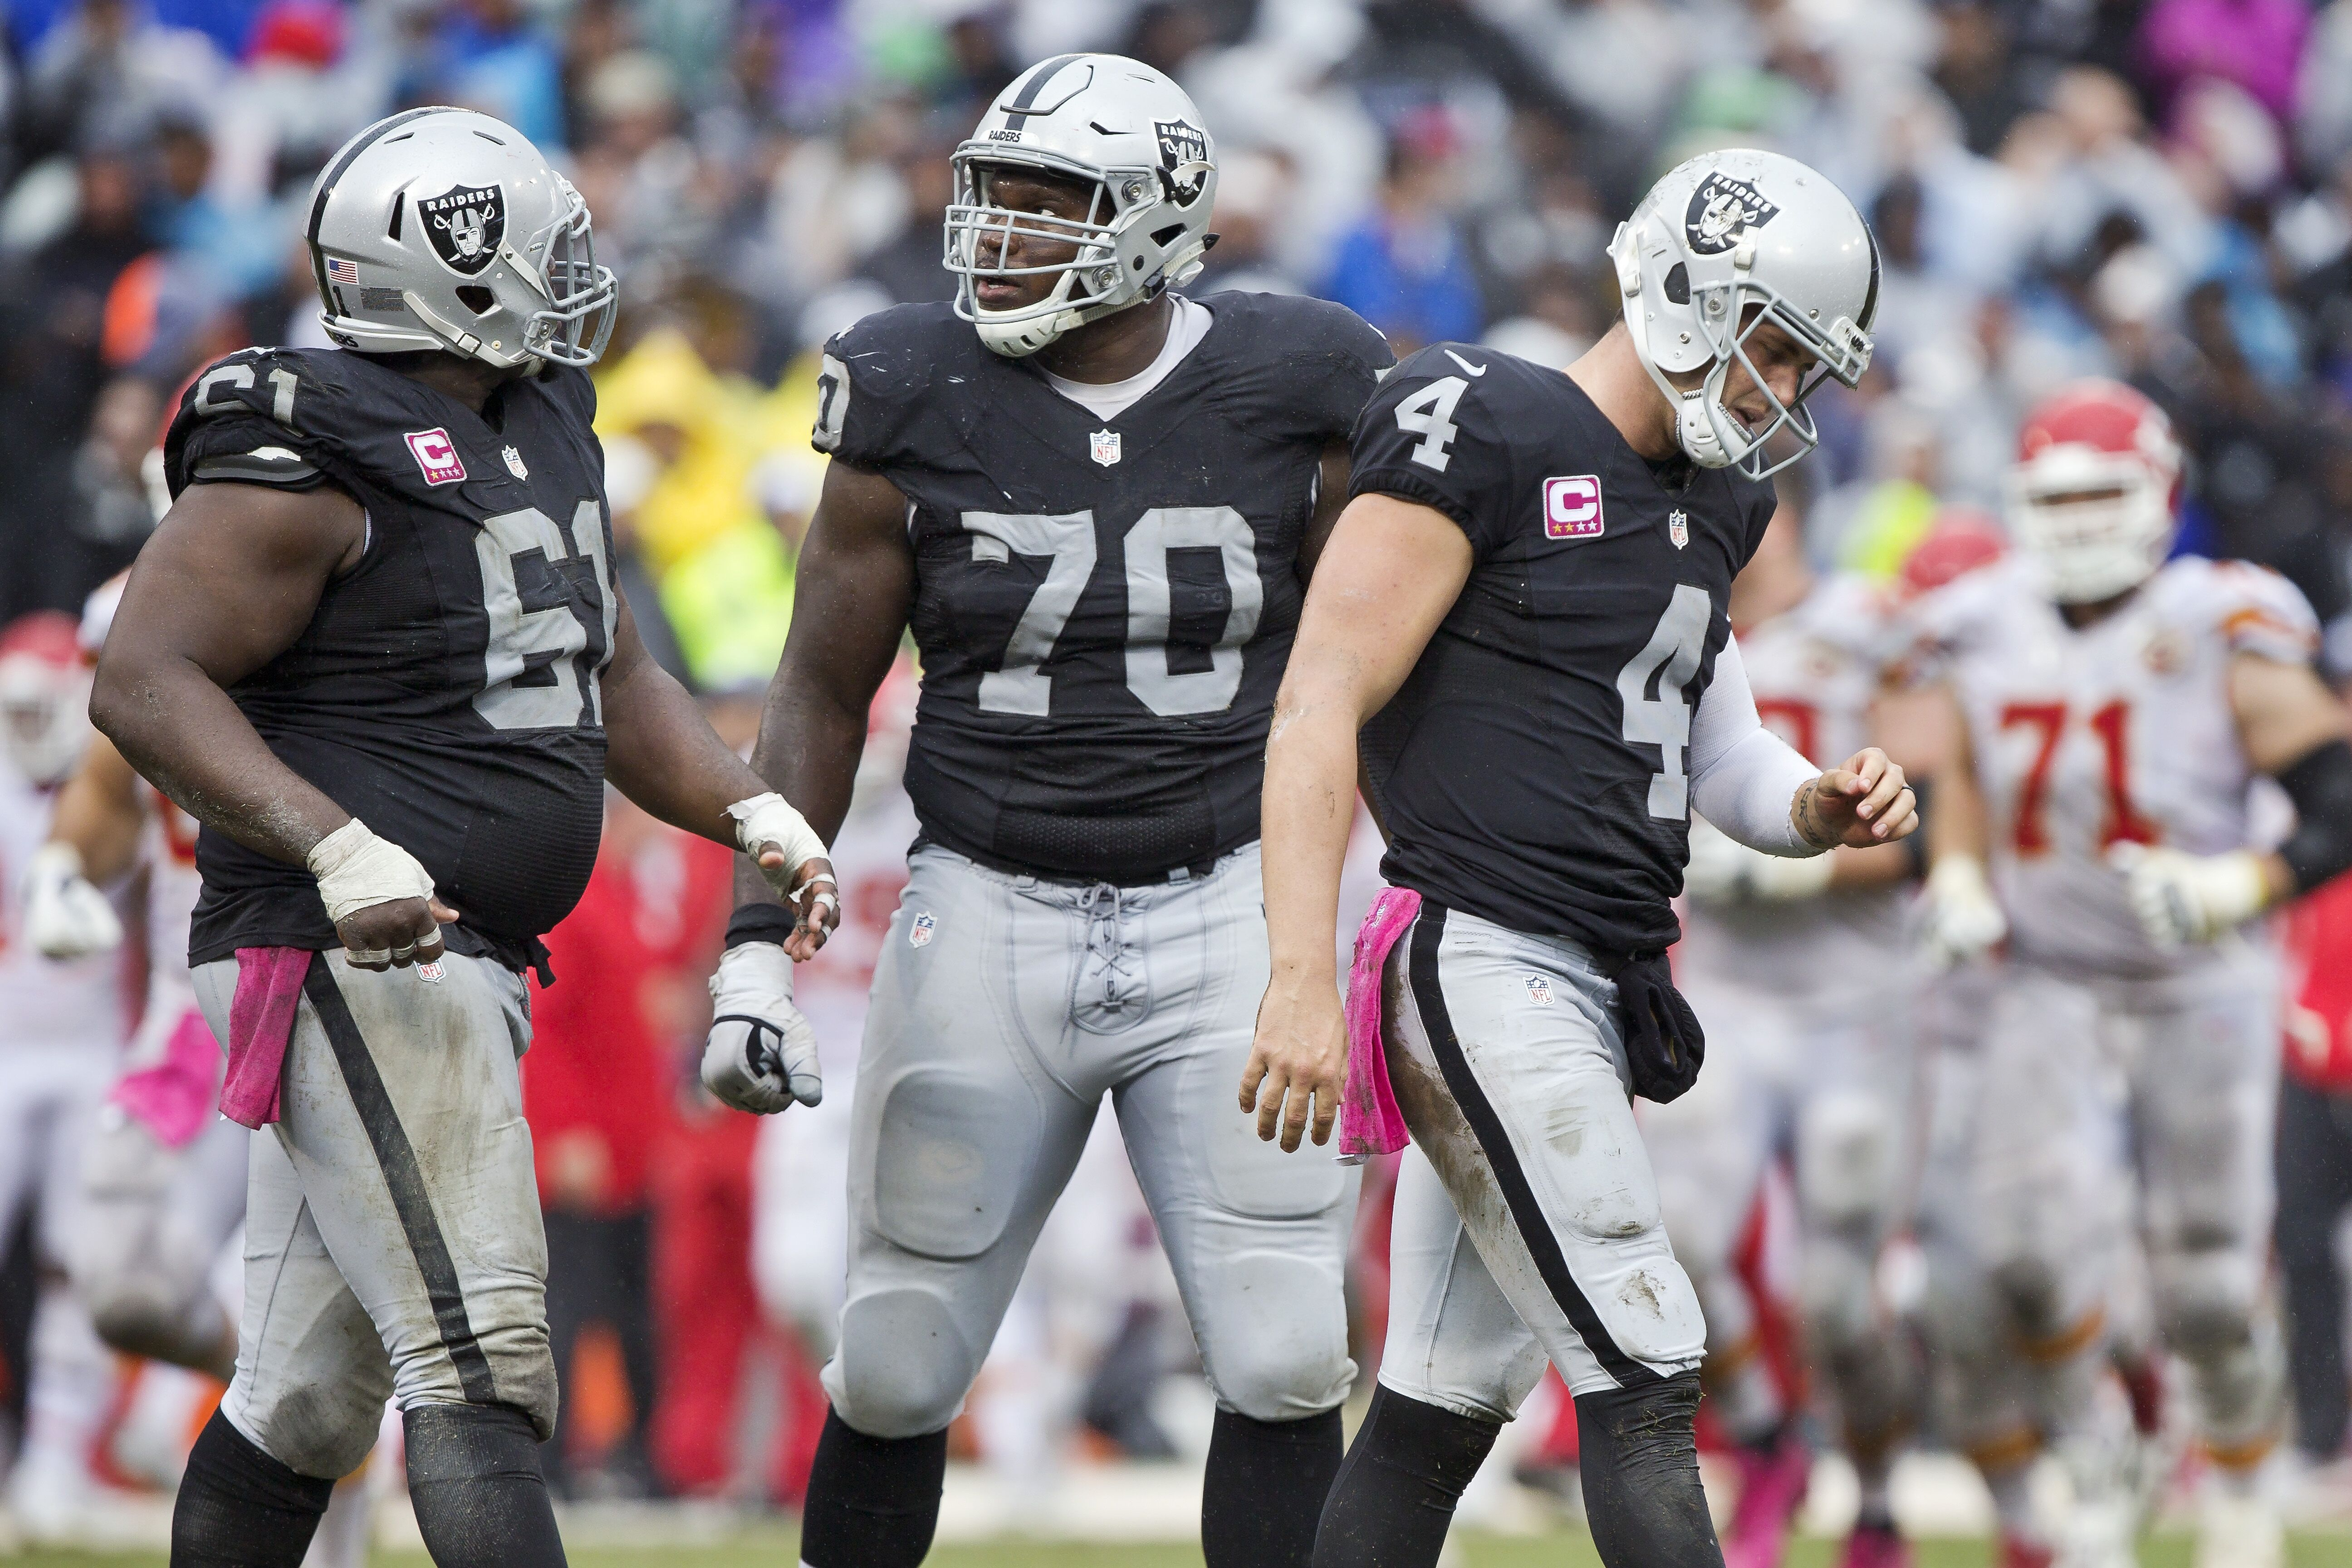 Oakland Raiders 5 best players entering 2017 NFL season Page 3